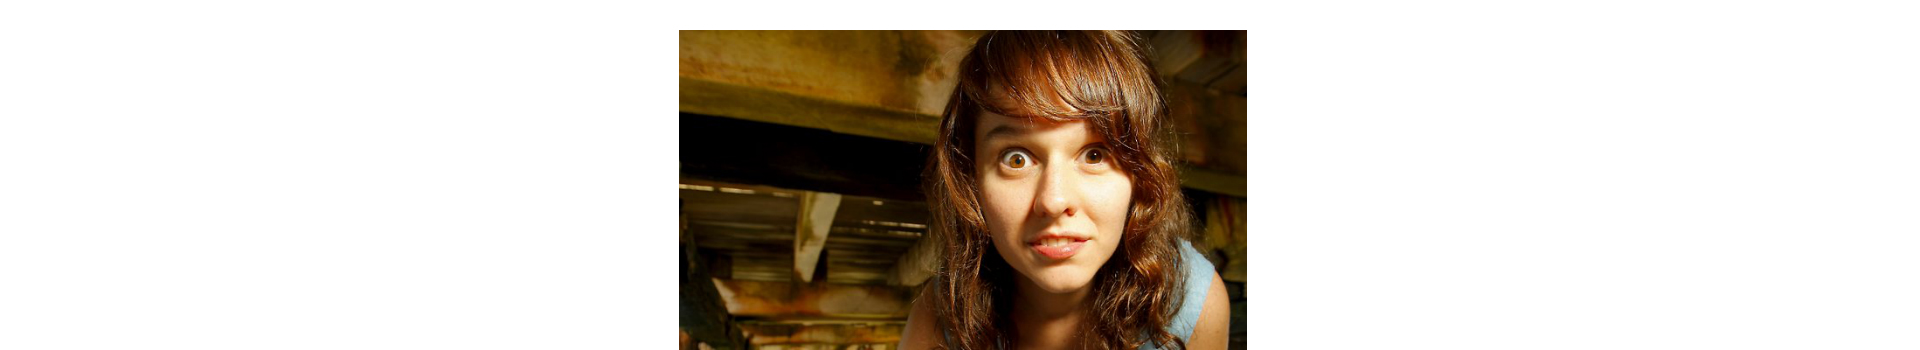 Claudia O'Doherty Experience banner image